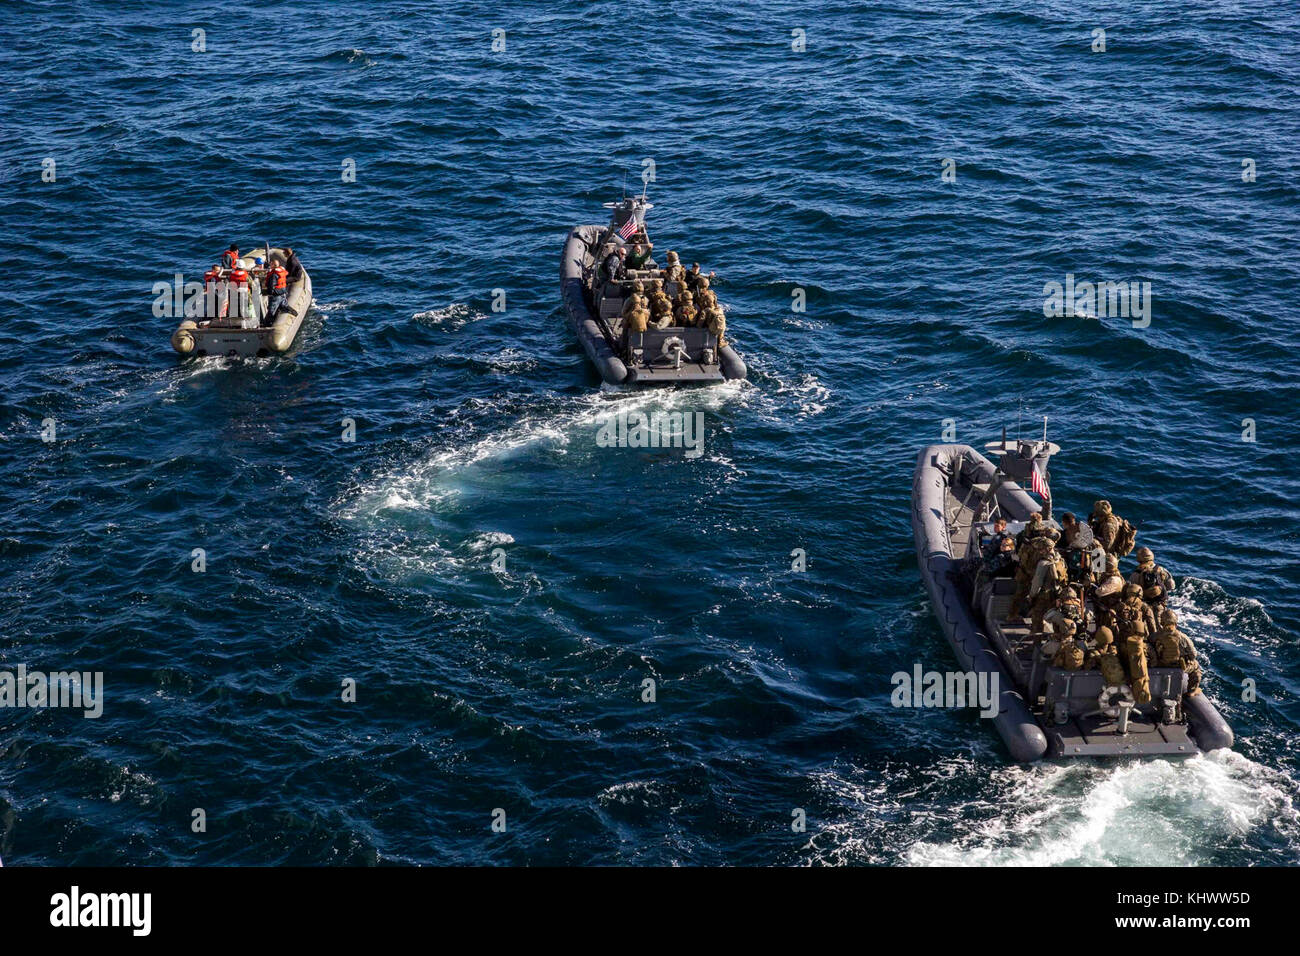 U.S. Marines with the Maritime Raid Force (MRF), 26th Marine Expeditionary Unit (MEU) embark on a visit, board, Stock Photo